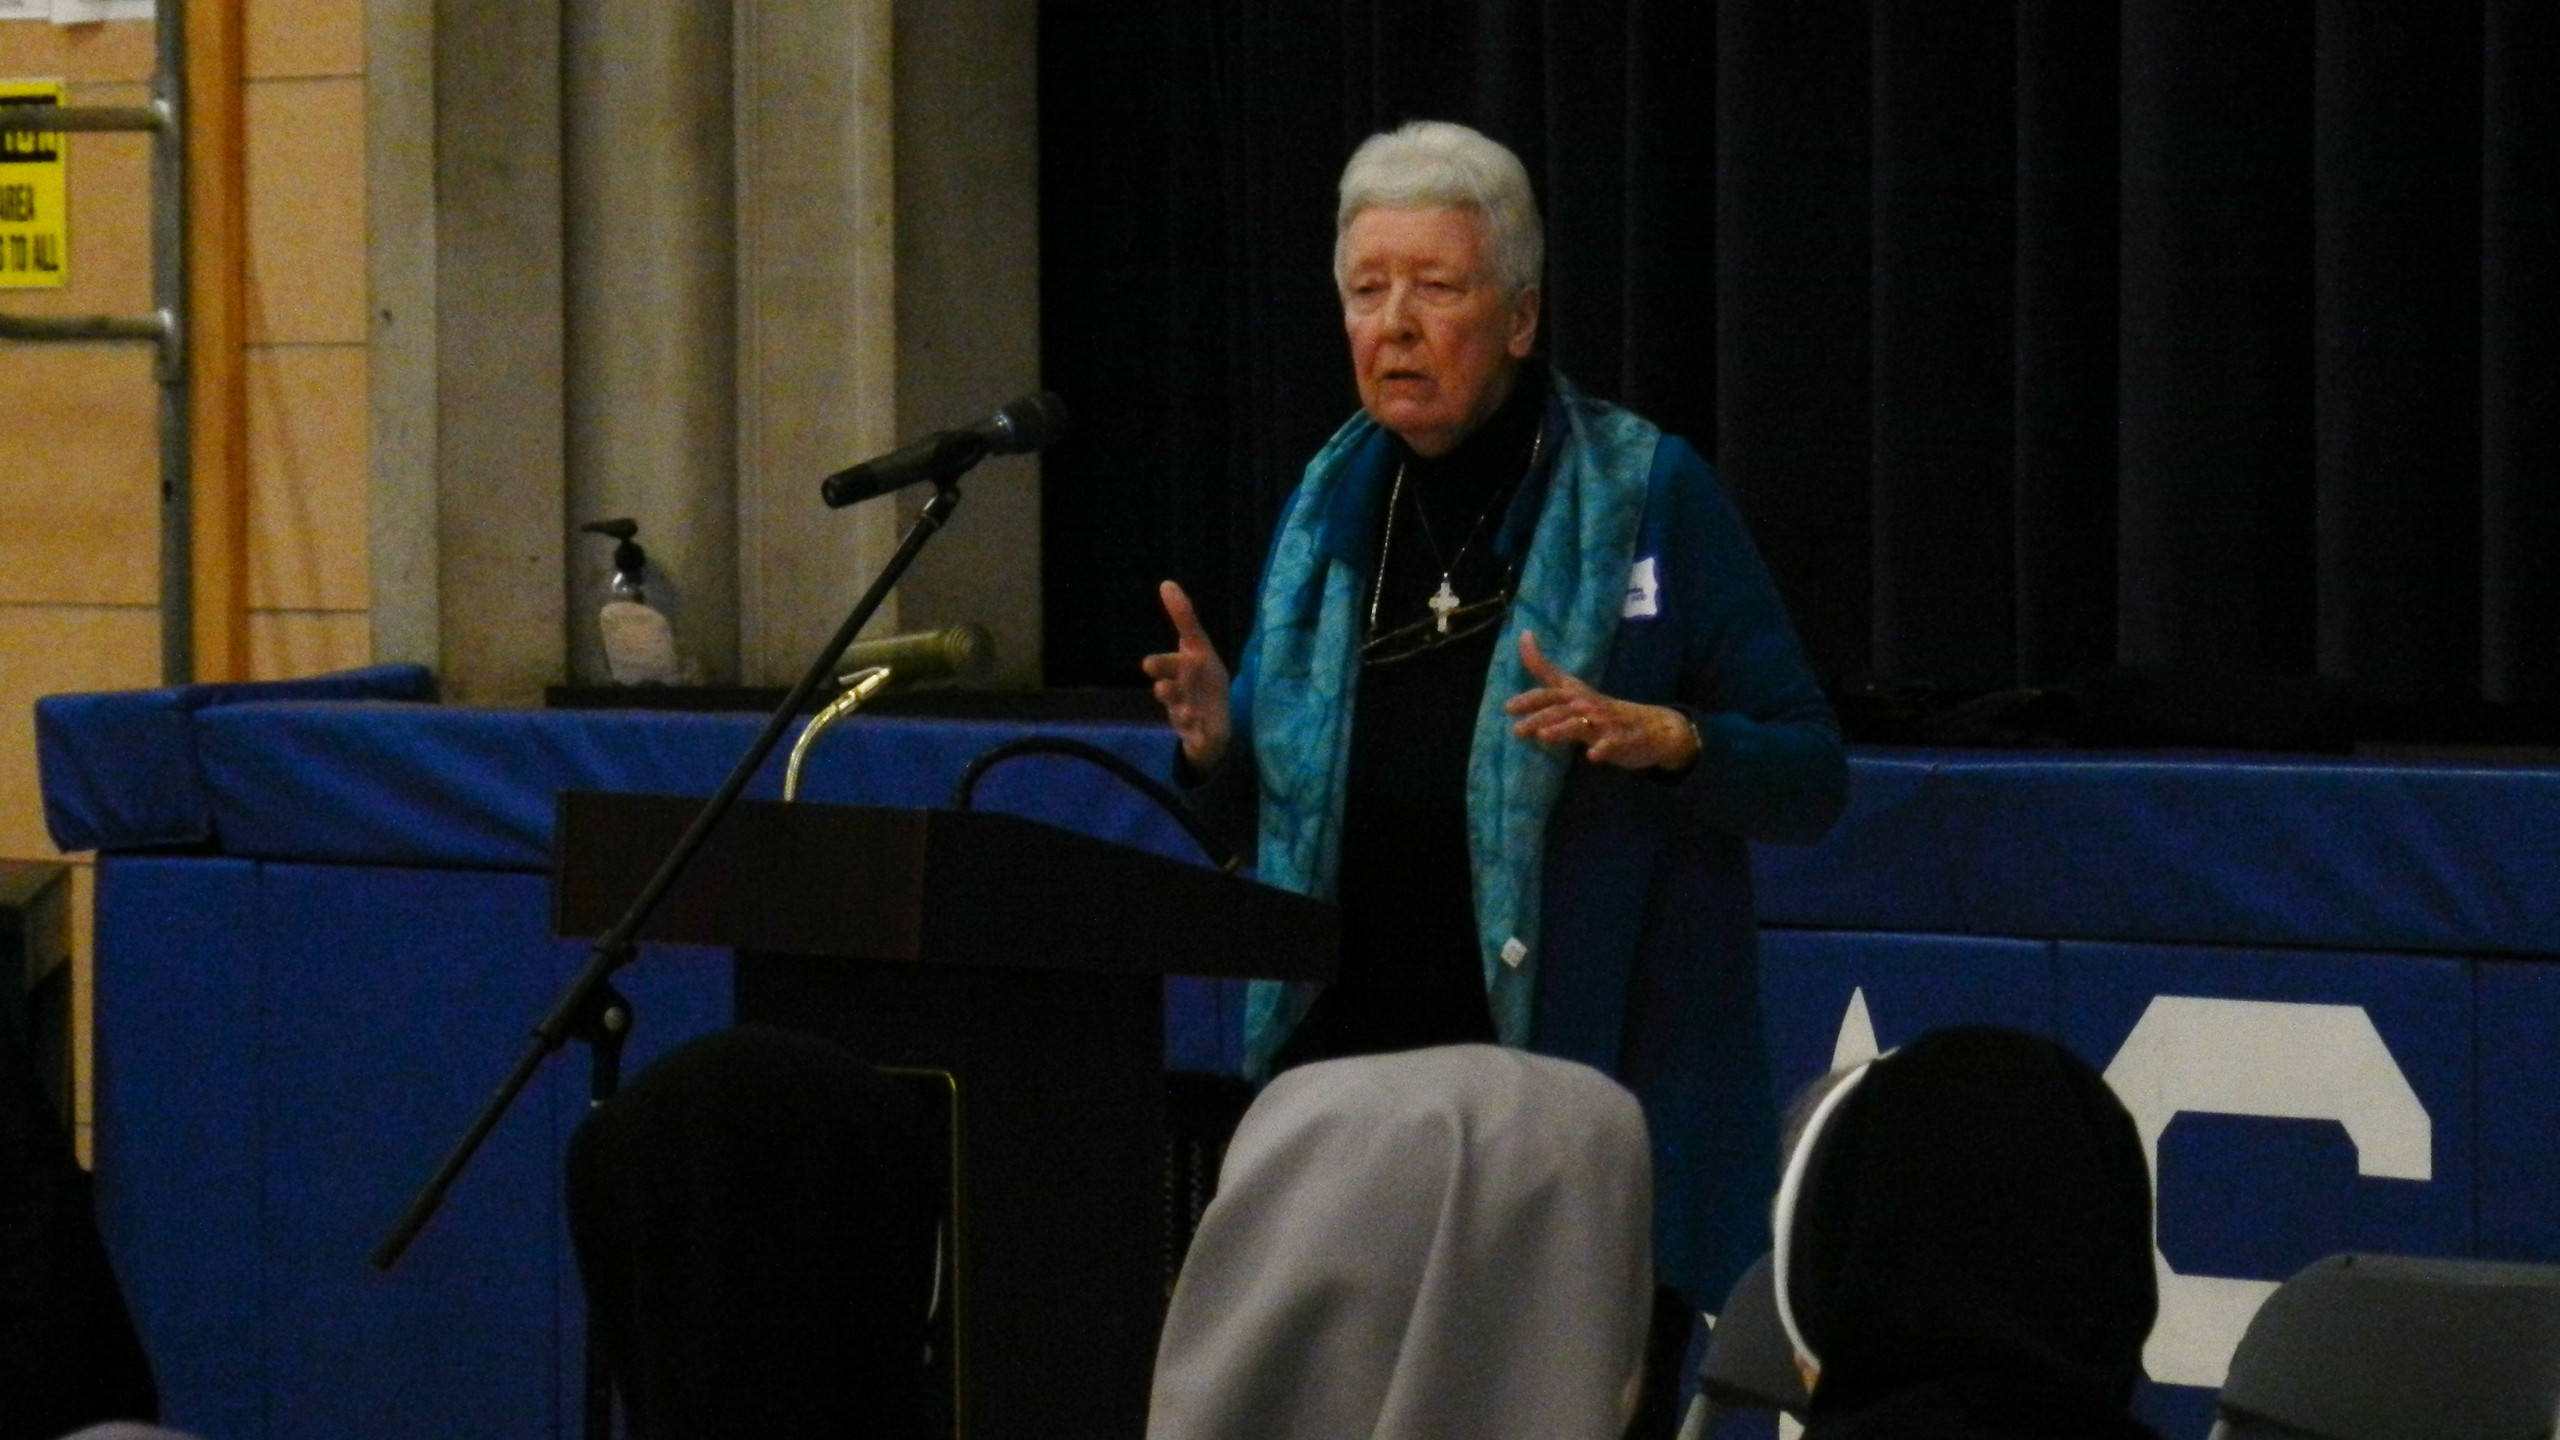 Sister Patricia Crowley, OSB at the podium